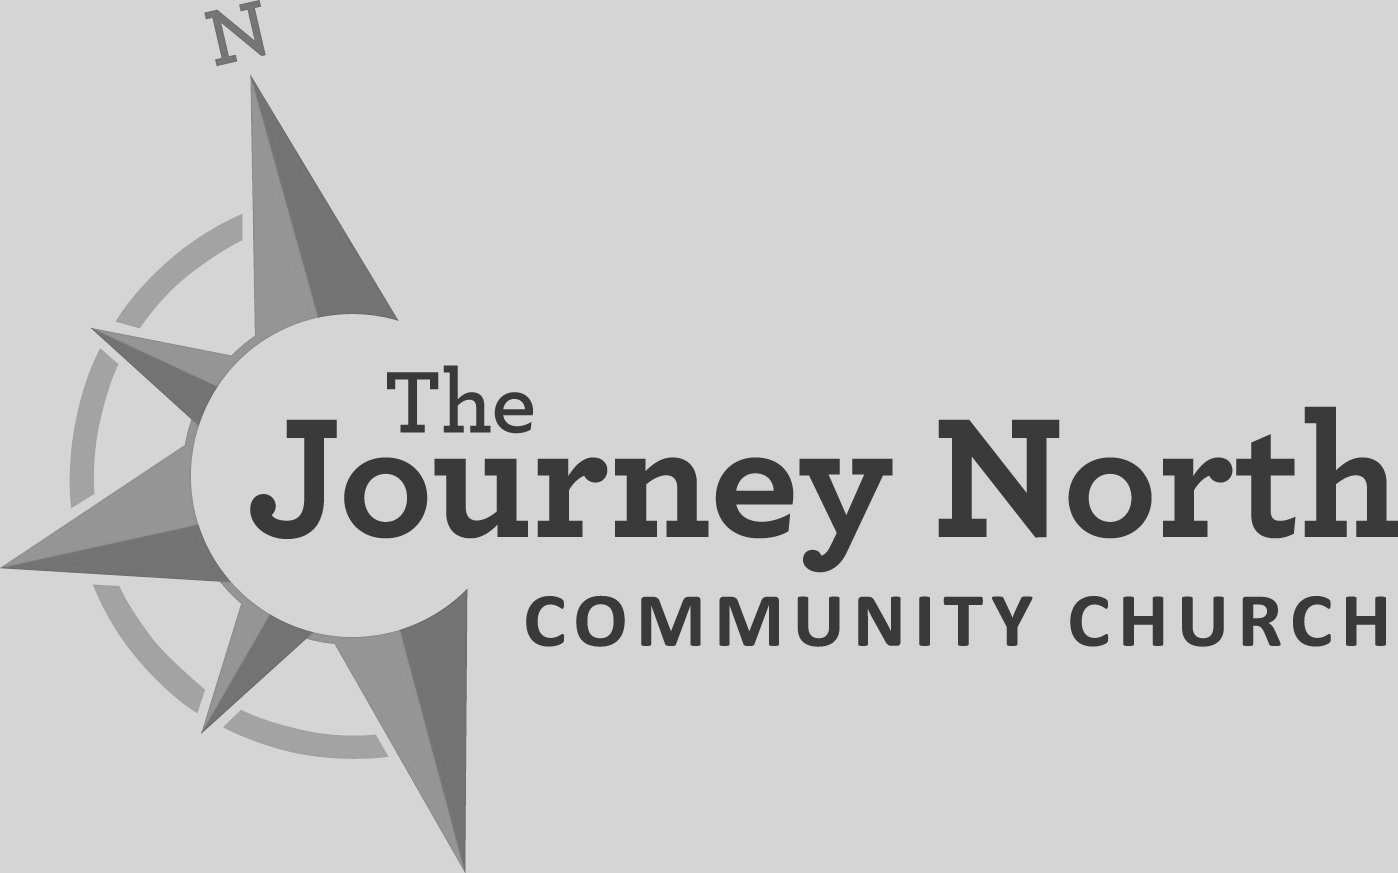 The Journey North Community Church supports North City Church